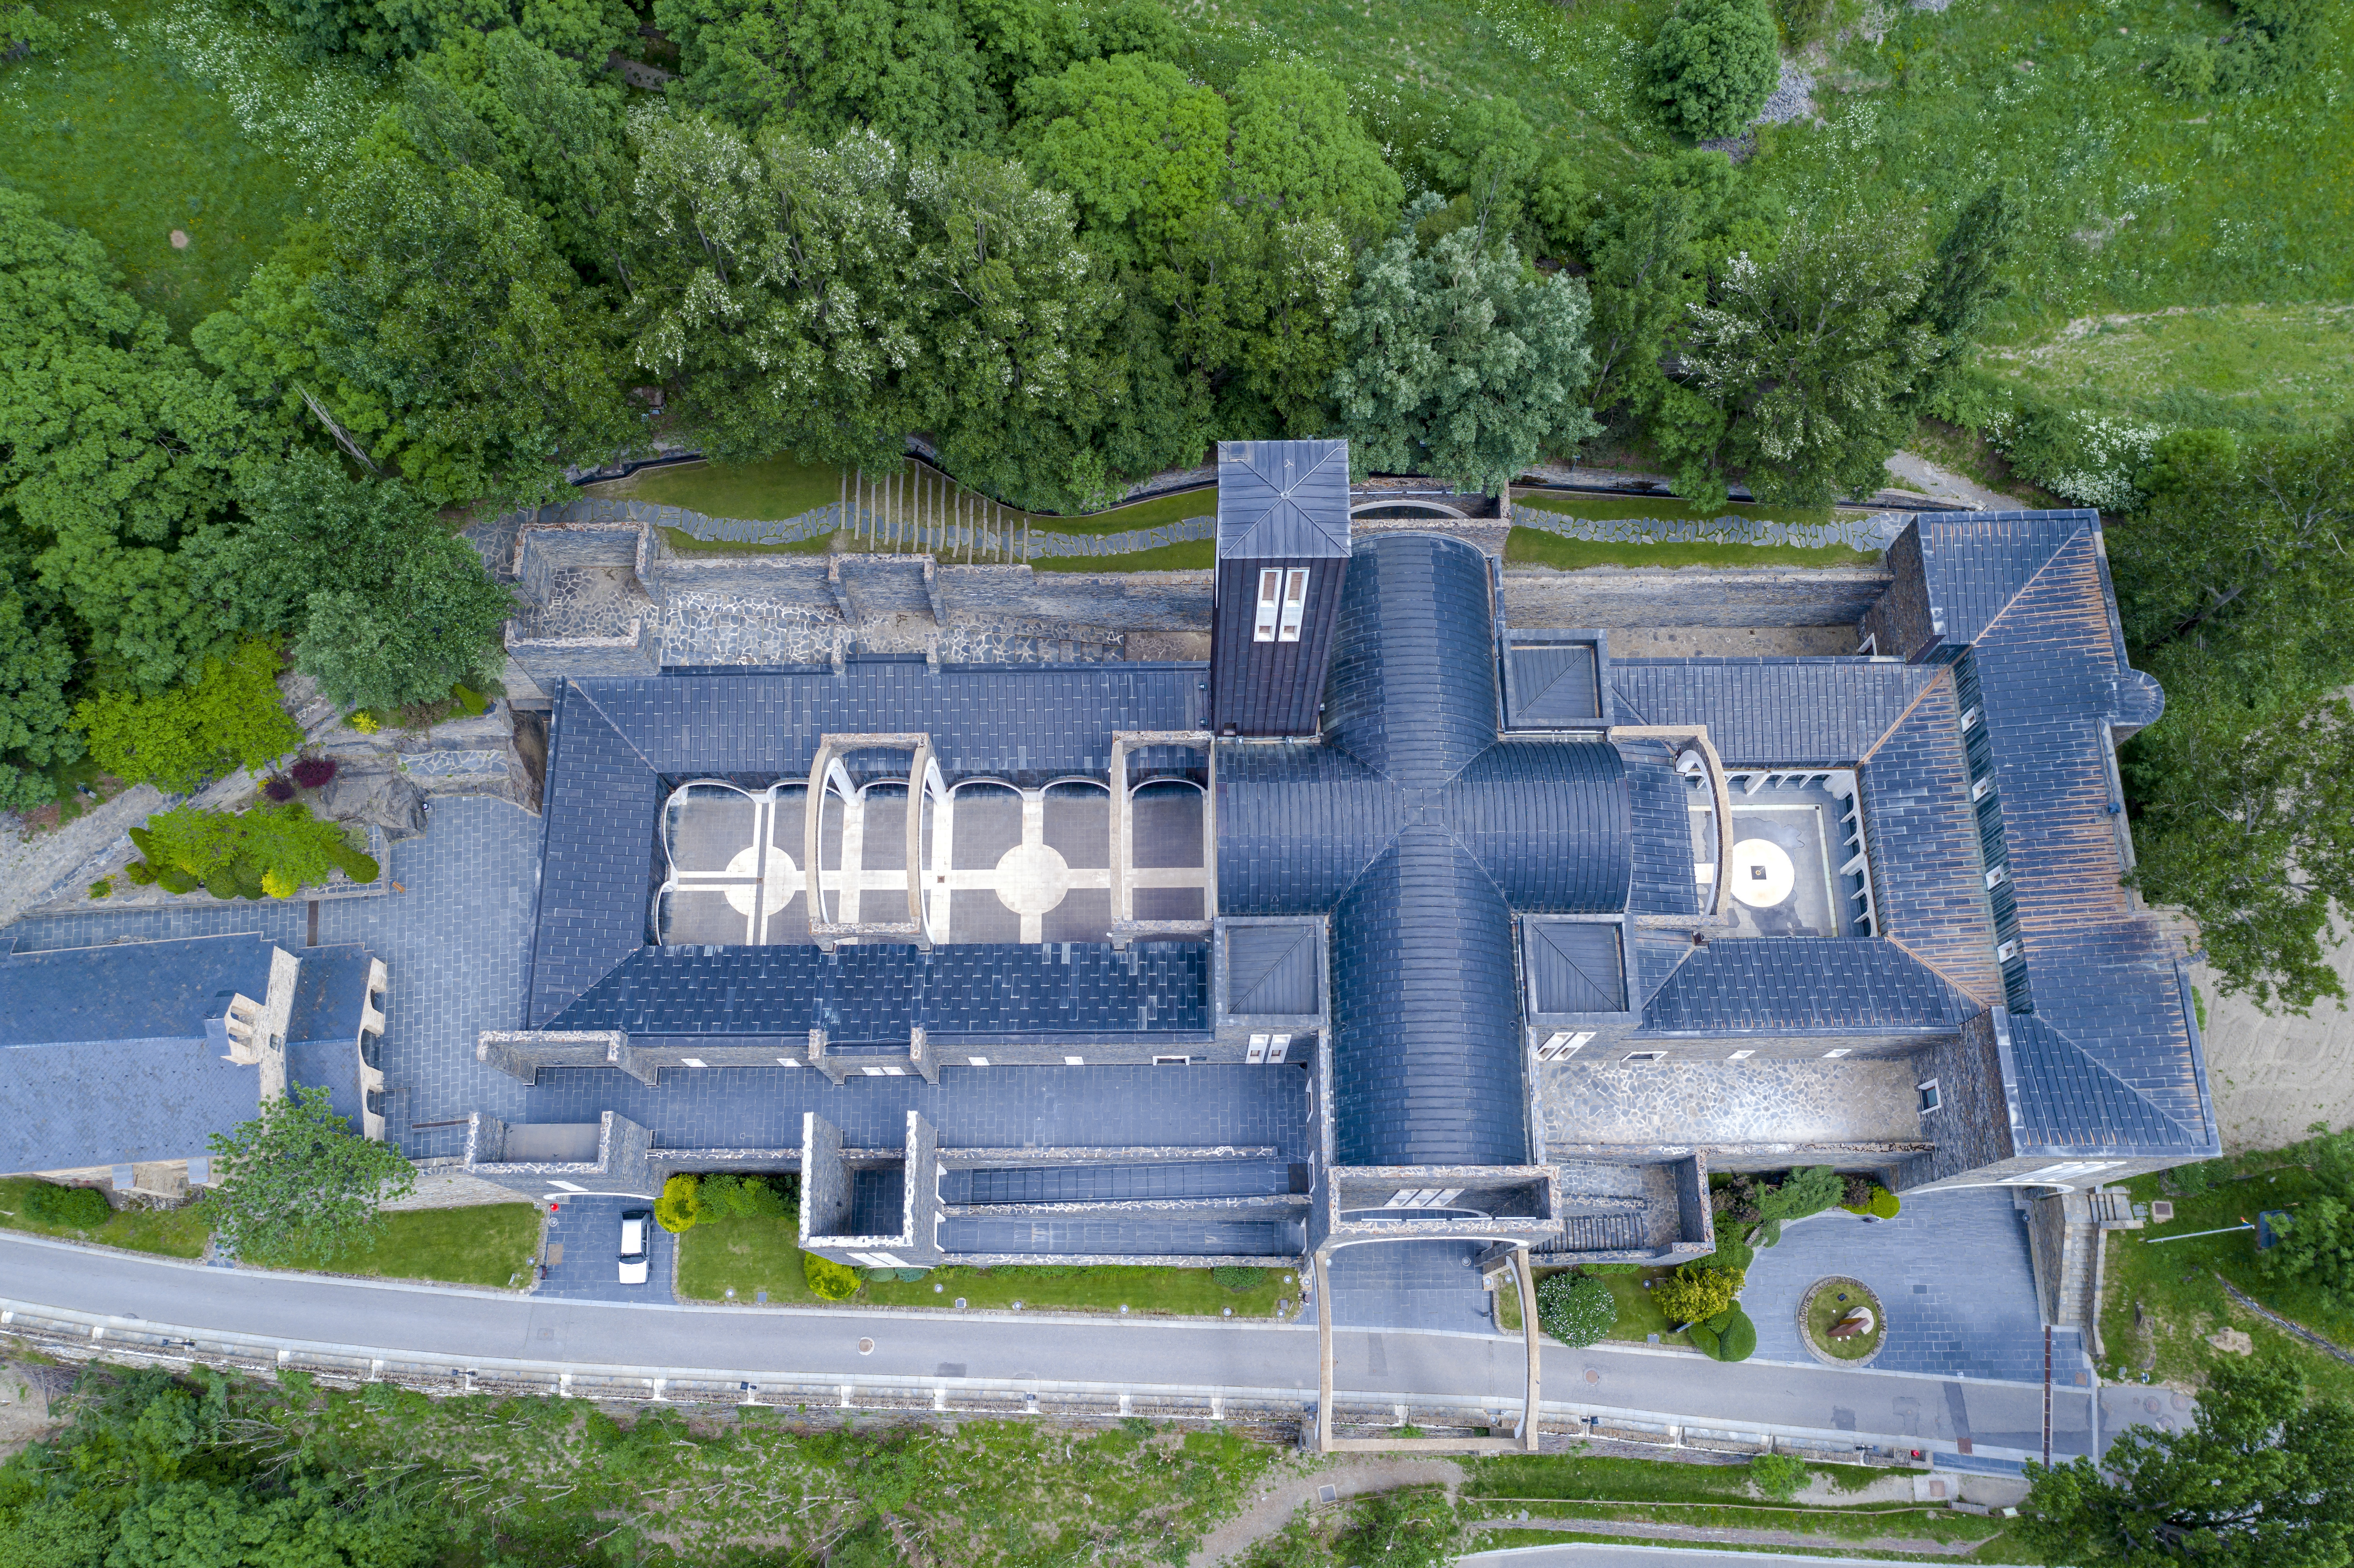 Sanctuary of Our Lady of Meritxell is a basilica located in the town of Meritxell, in the Andorran parish of Canillo, Aerial view overhead